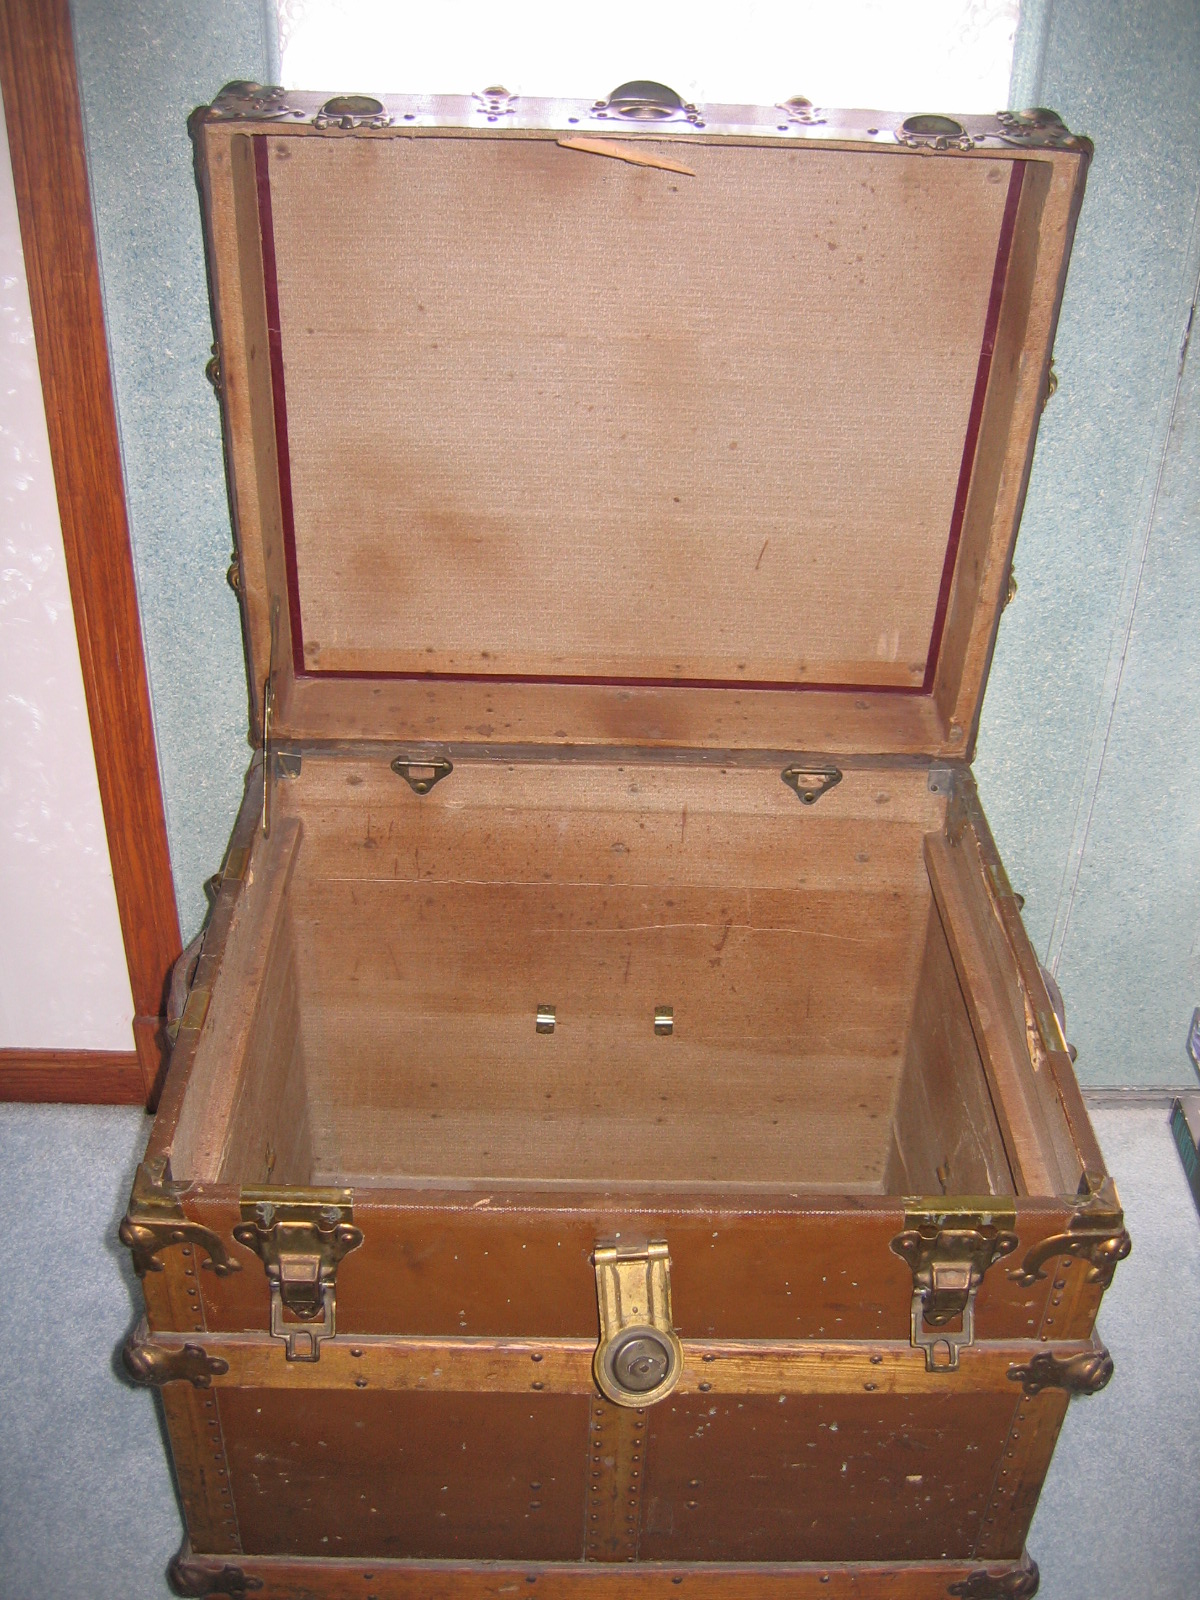 Antique wooden chest travel storage trunk item for